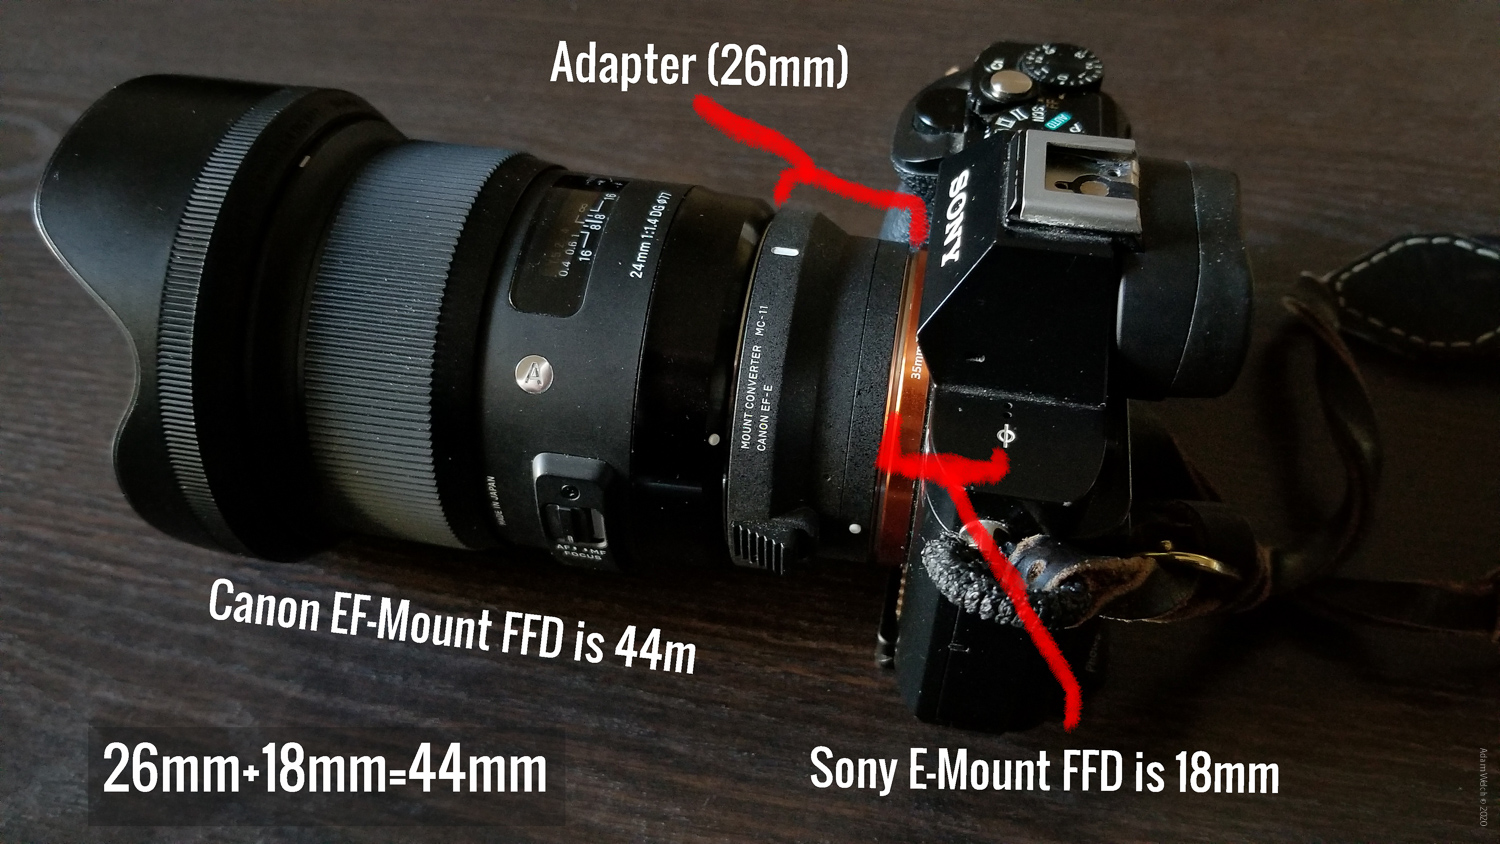 Lens mount adapter for Sigma lenses